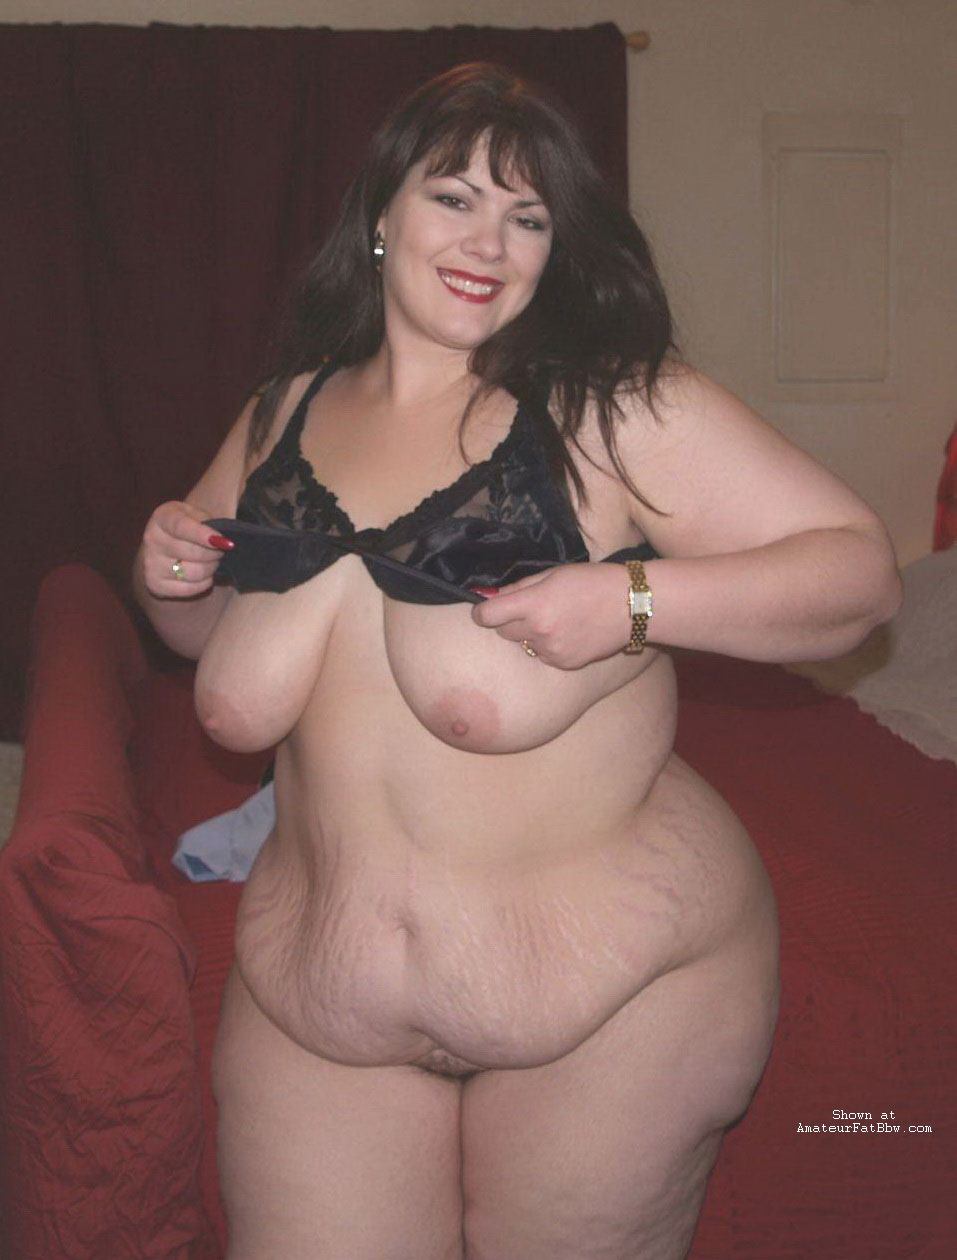 Commit Sexy fully nude chunky girls are